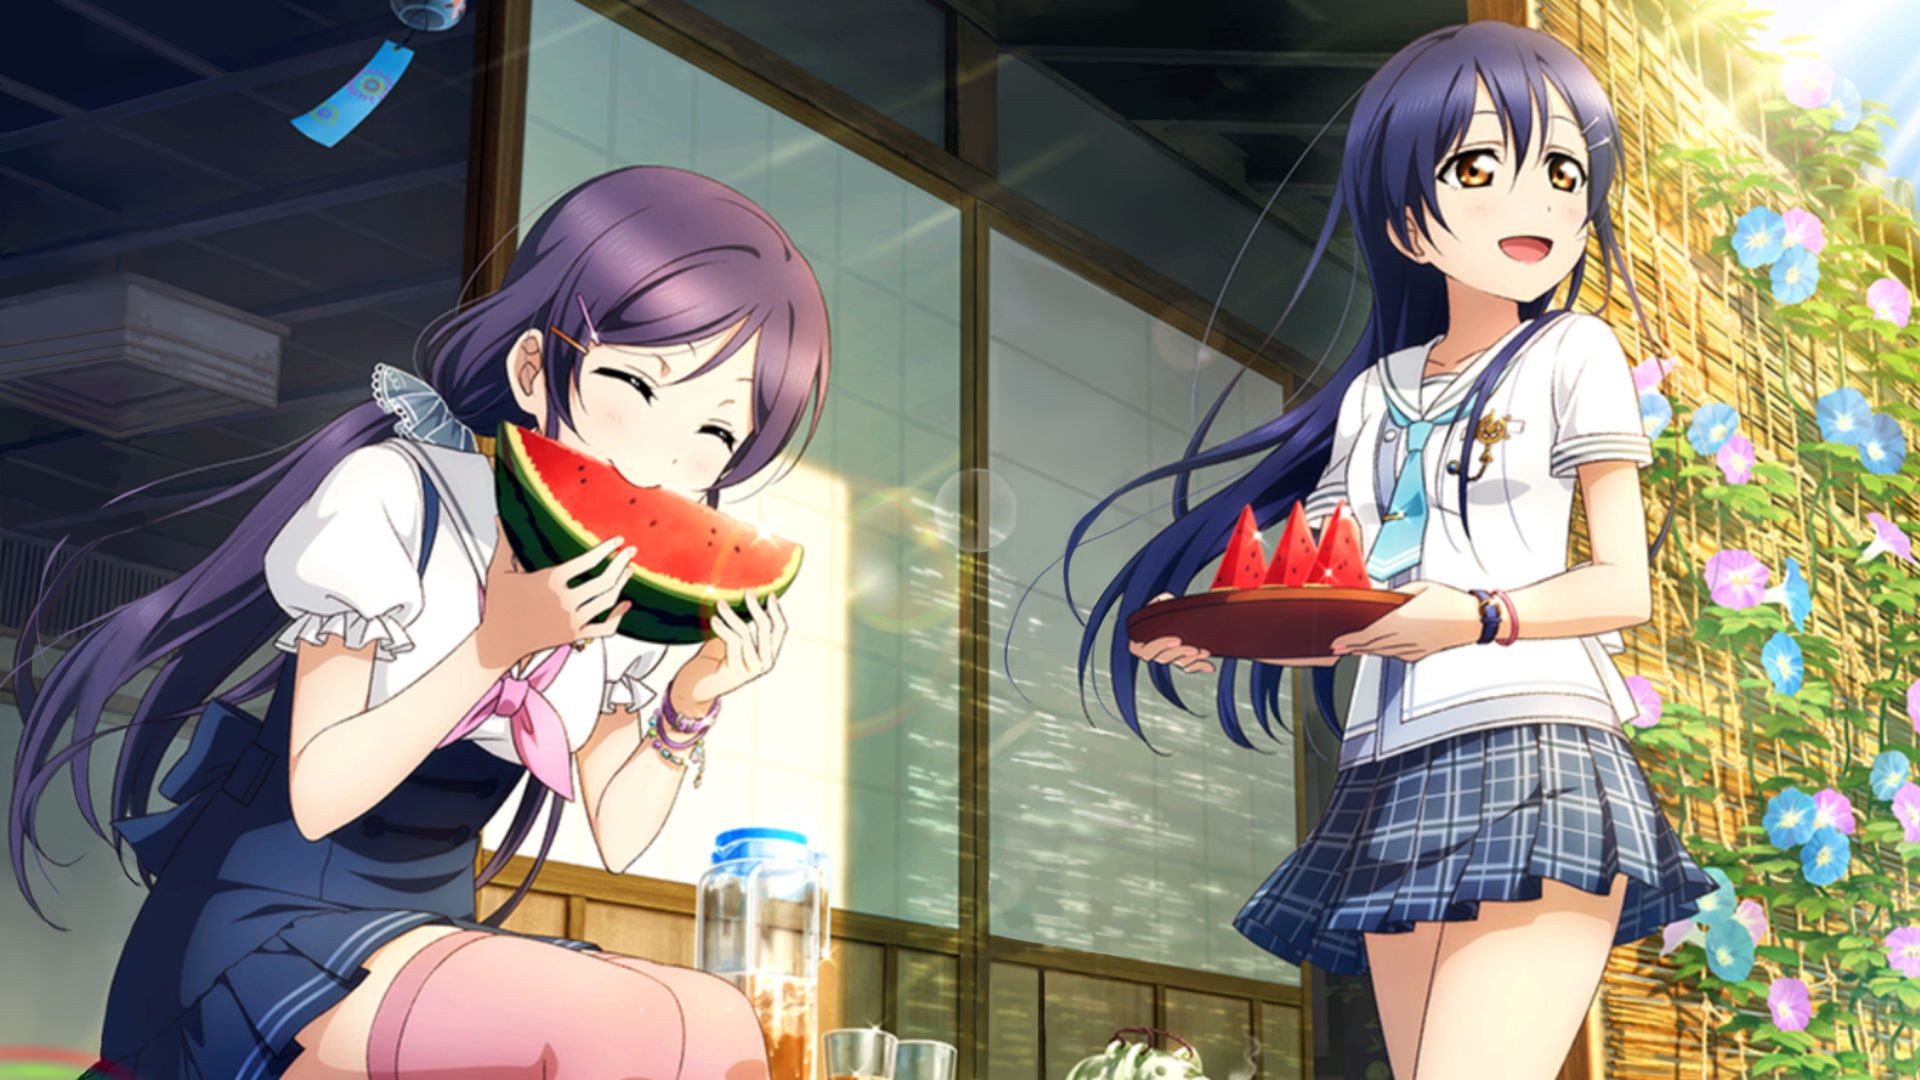 23066_lovelive_PC